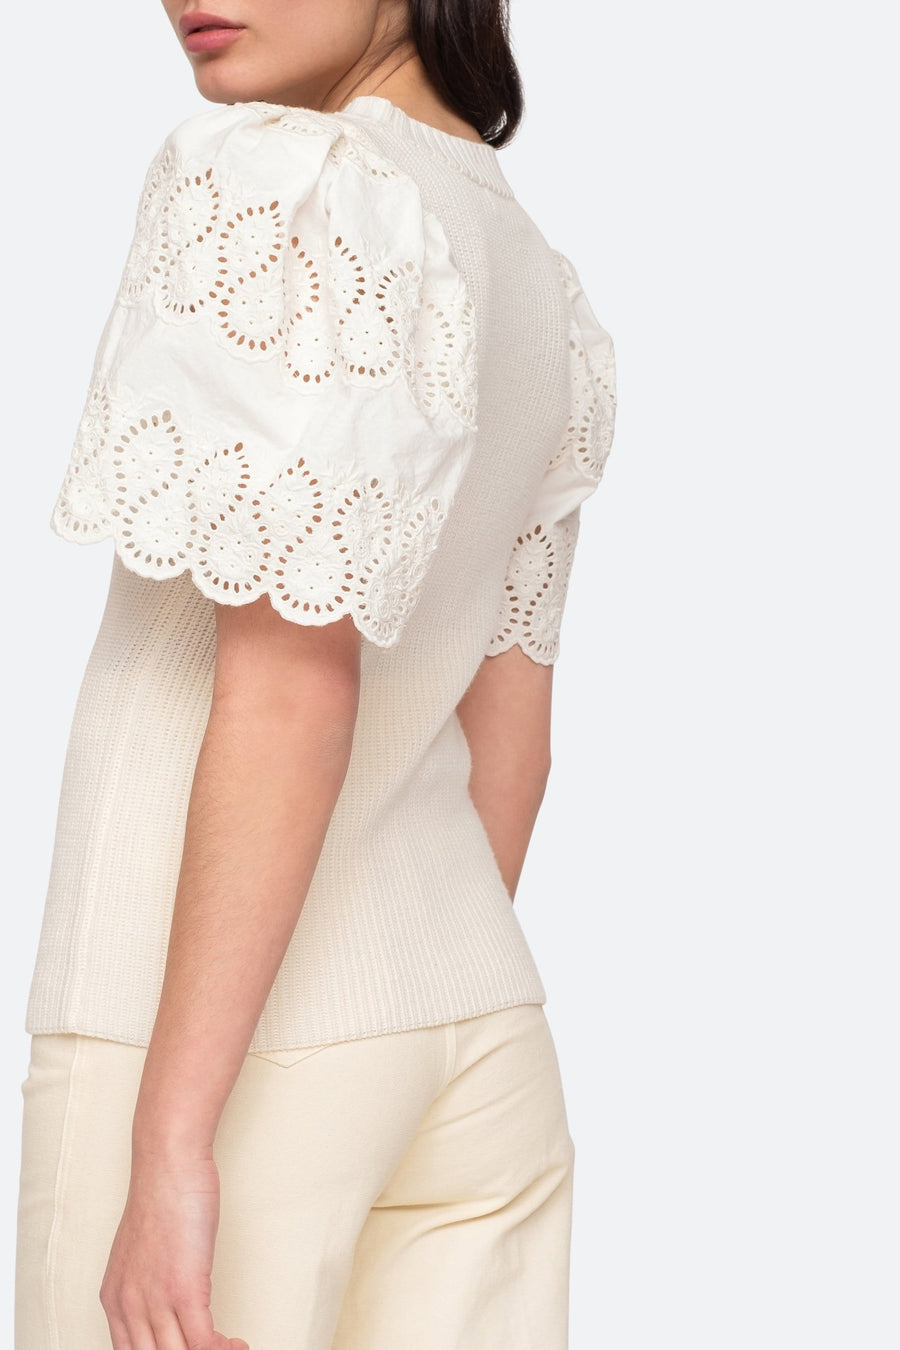 Nadene Lace Combo Sweater White